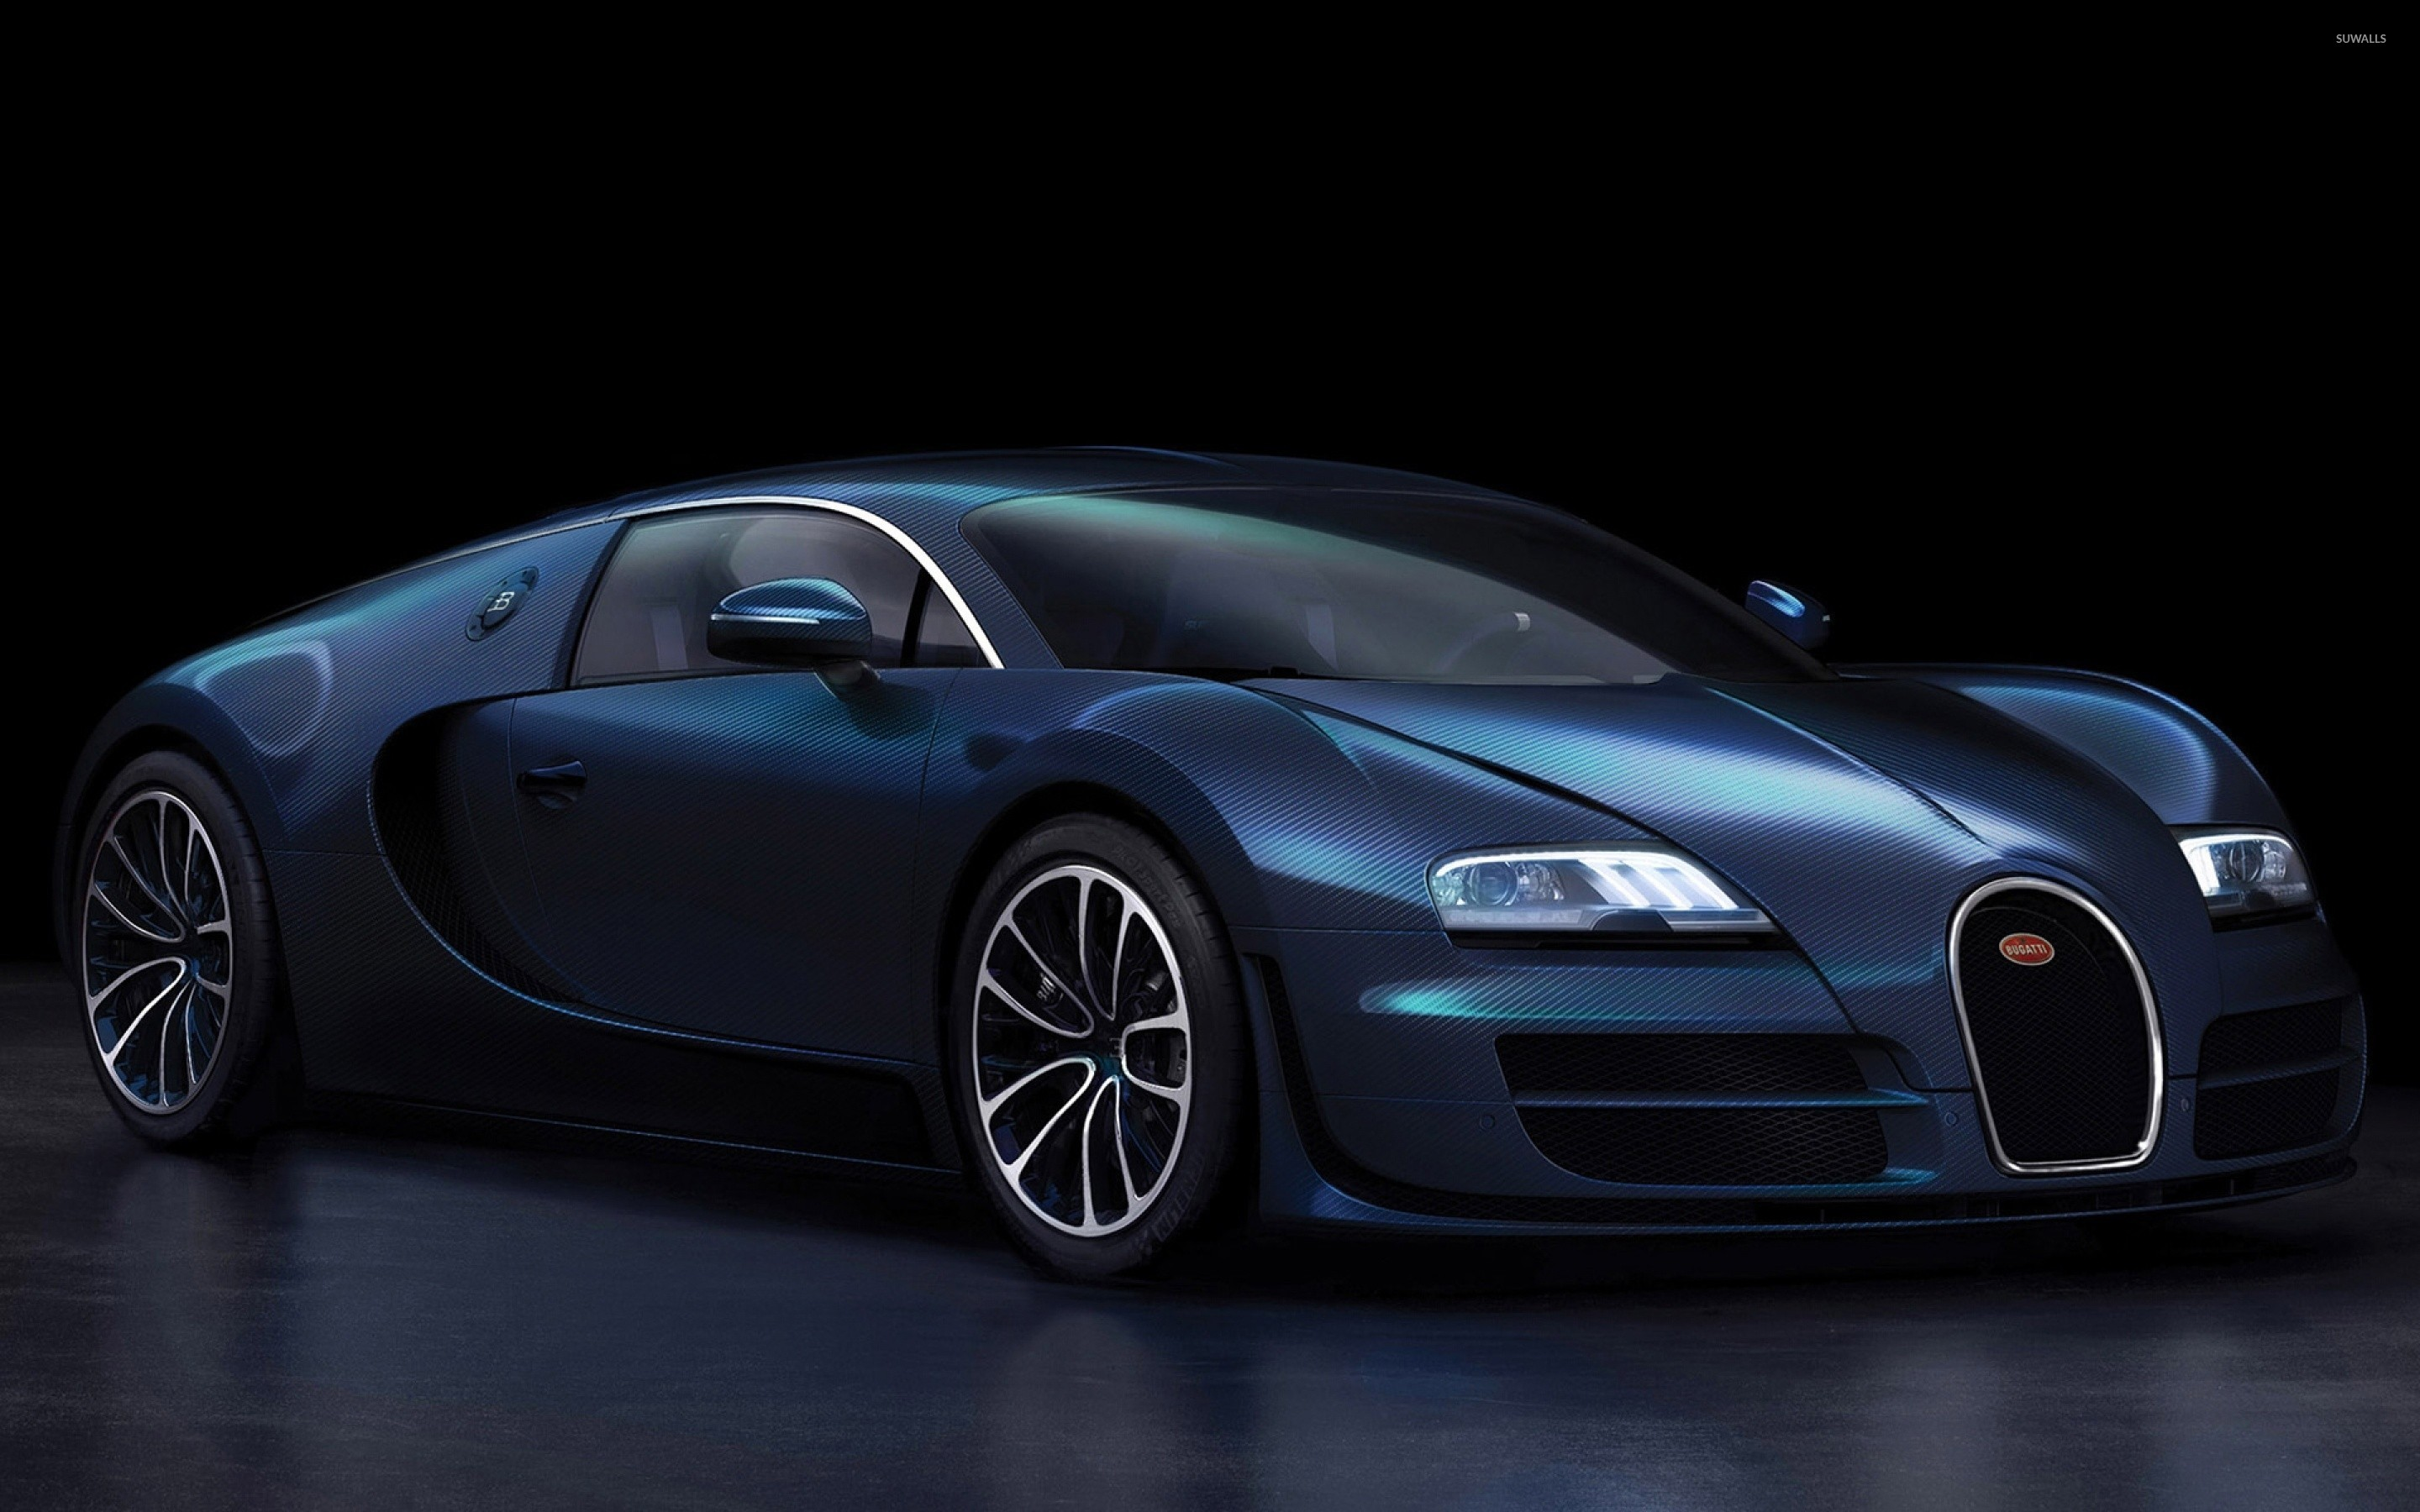 Dark Blue Bugatti Veyron Front Side View Wallpaper Car Wallpapers